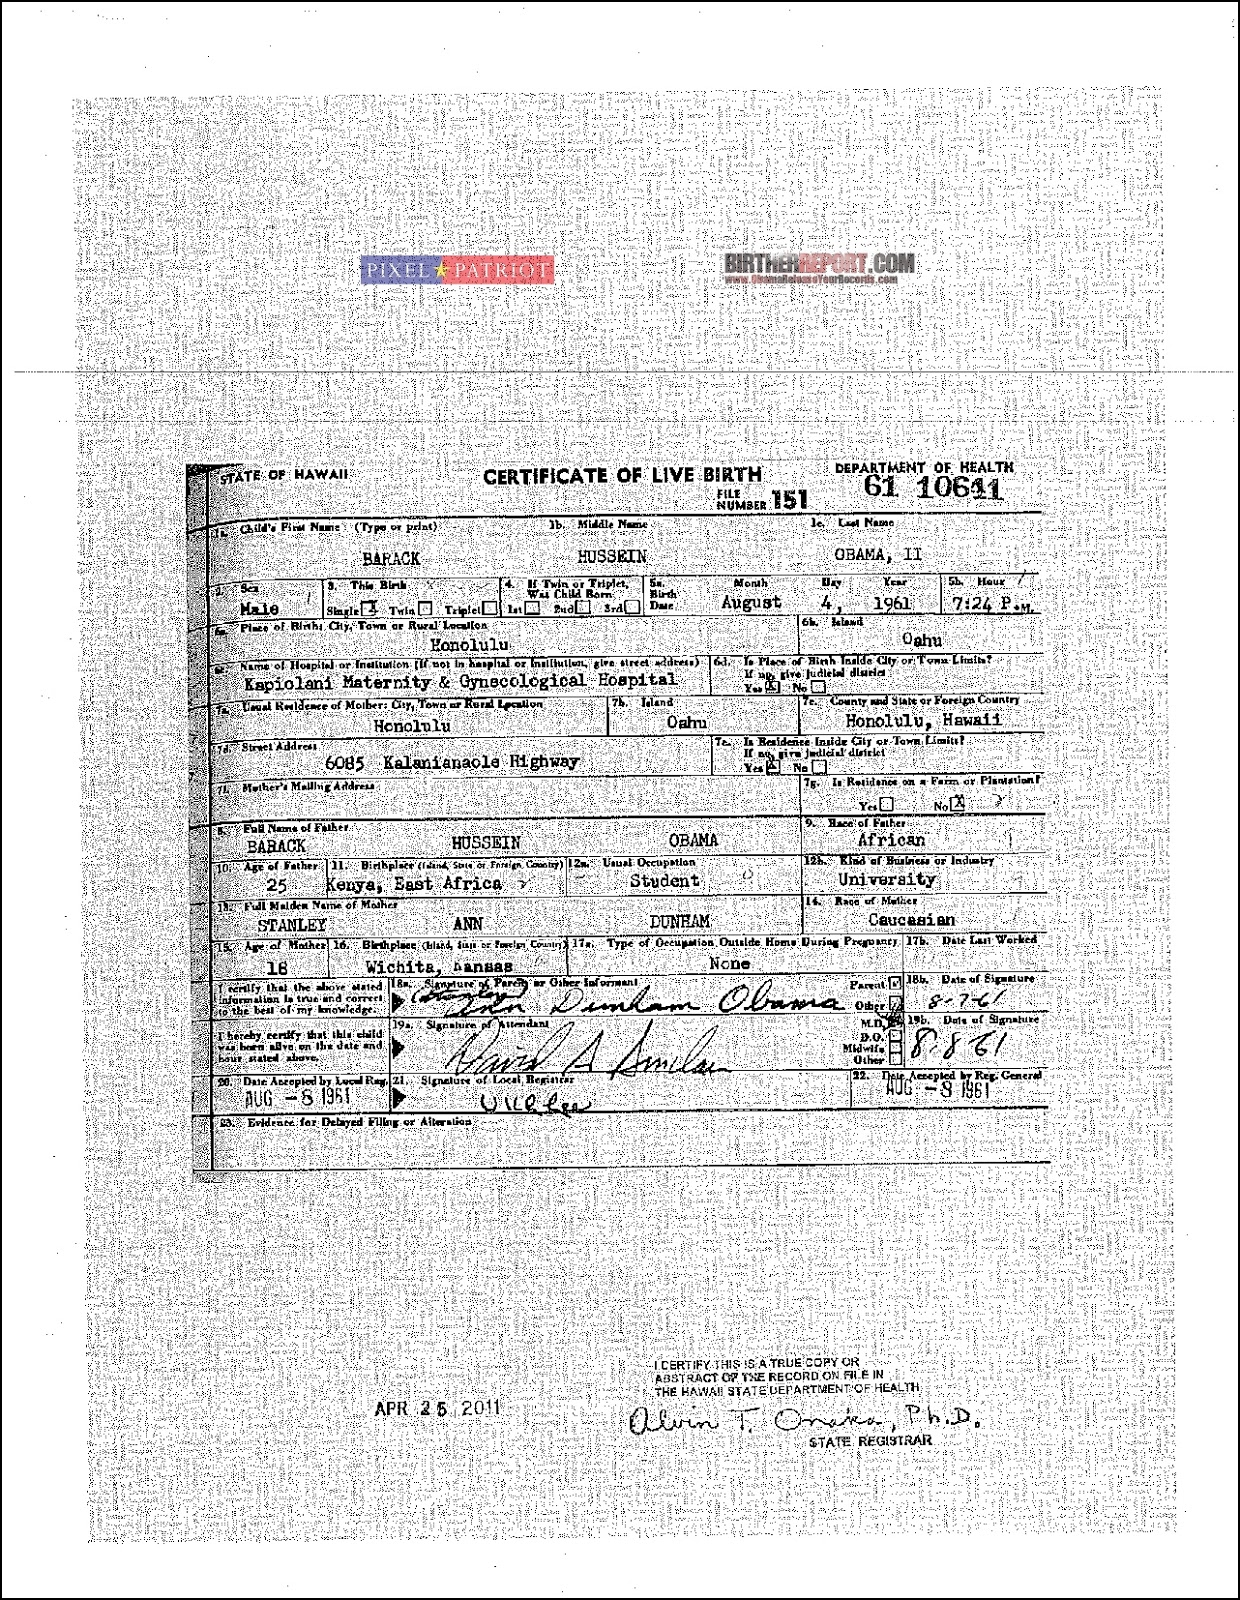 McInnish v Chapman - Obama Birth Certificate - Alabama Democratic